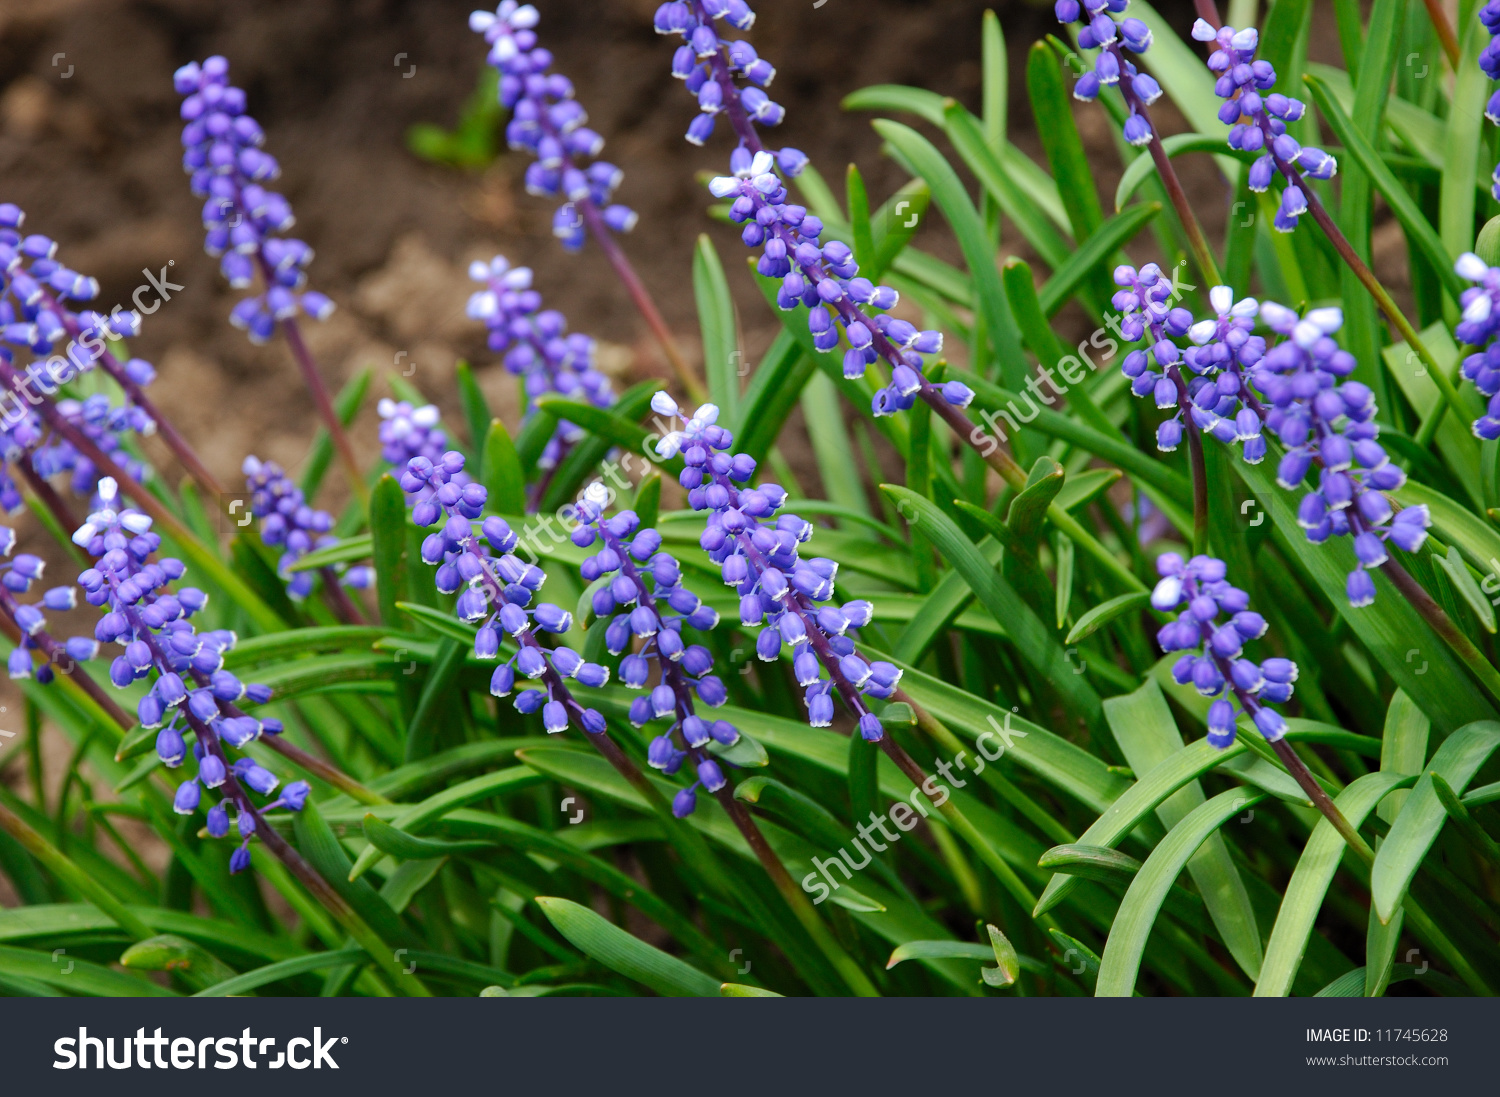 Liliaceae Muscari Racemosum Blue Spring Flower Stock Photo.